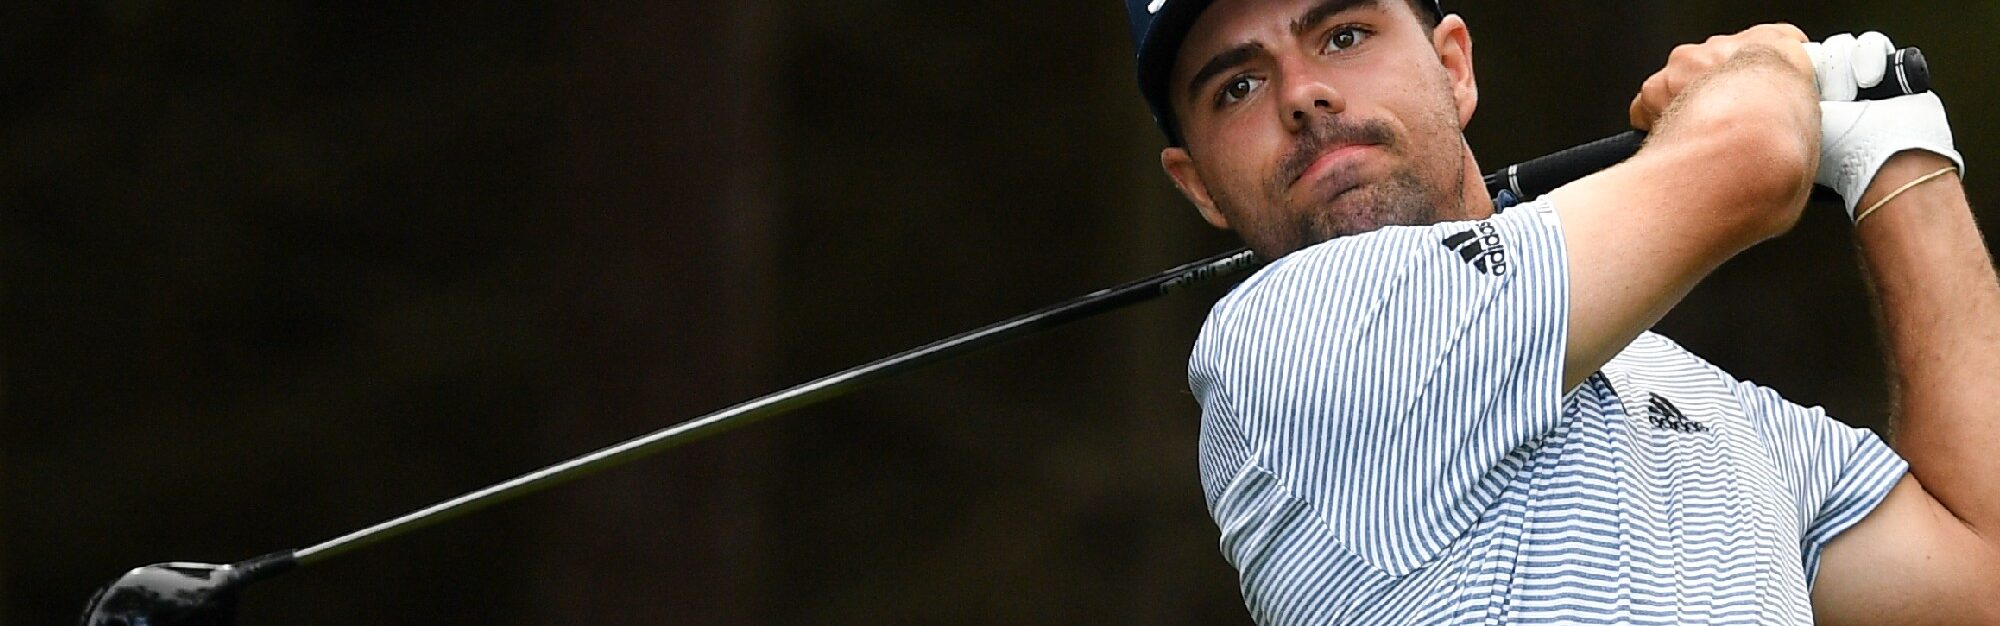 Challenge Tour player makes history with lowest round ever on a European tour